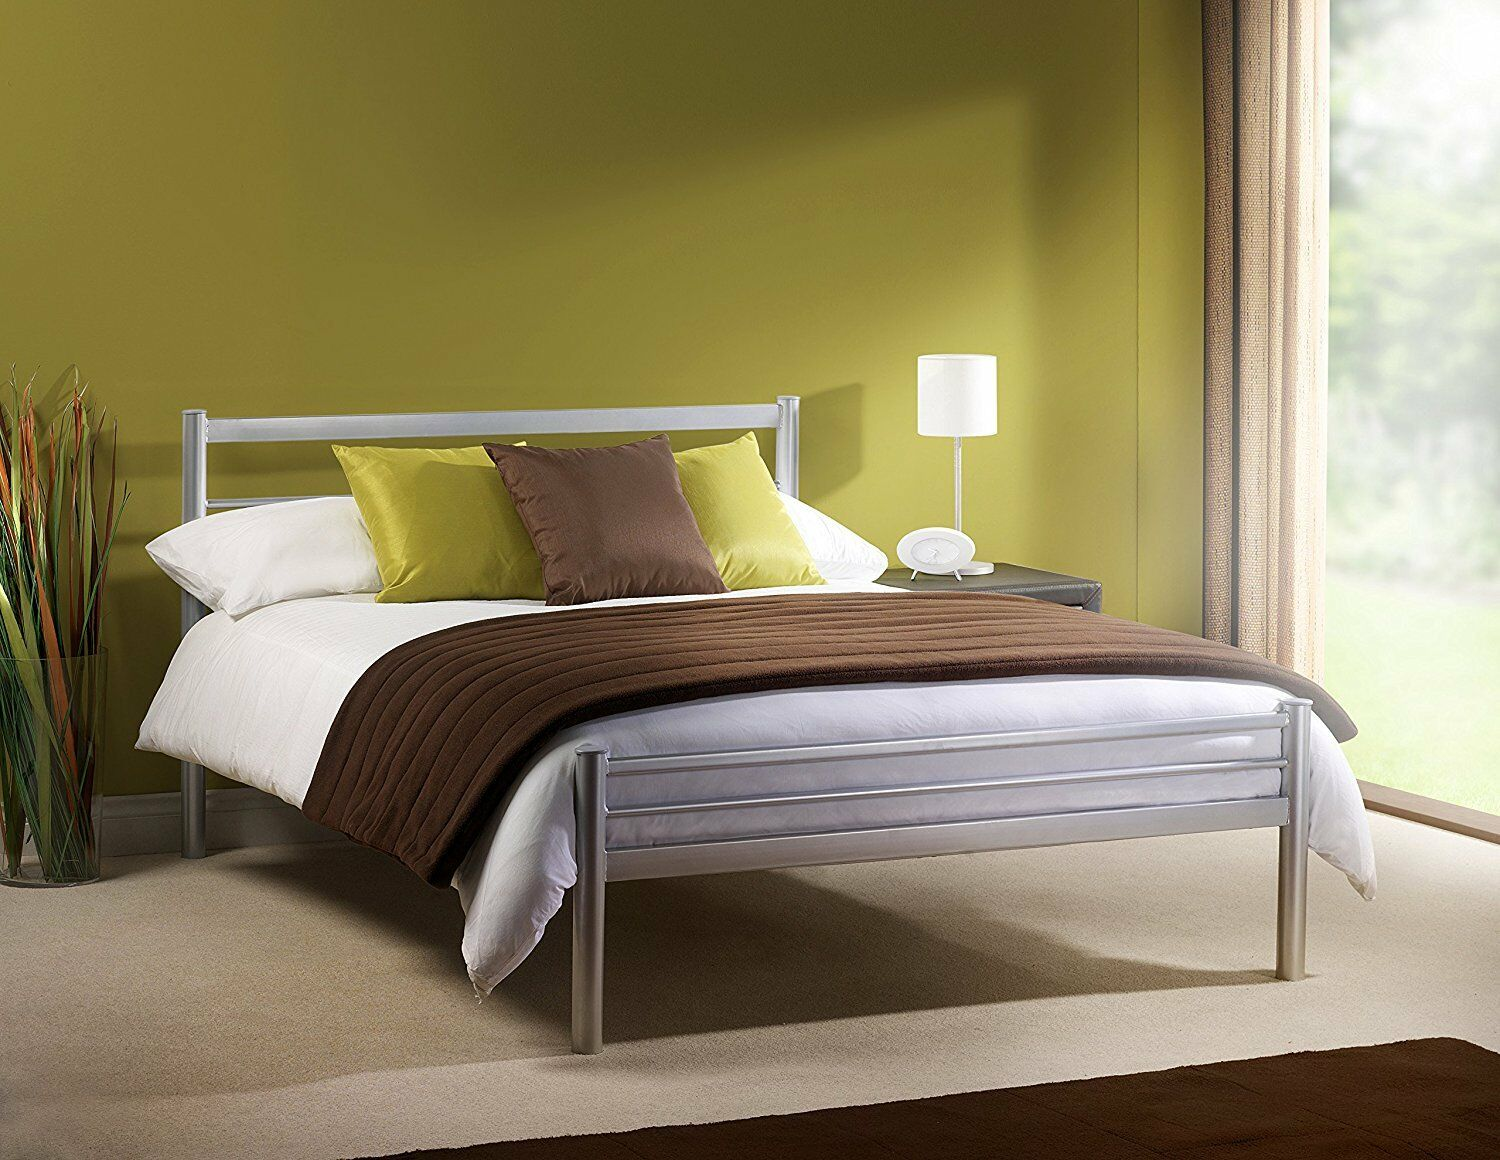 save off 188ba ea64f Details about New Silver Cheap Metal Bed Frame in 5 Sizes Bedroom Furniture  Metal Beds